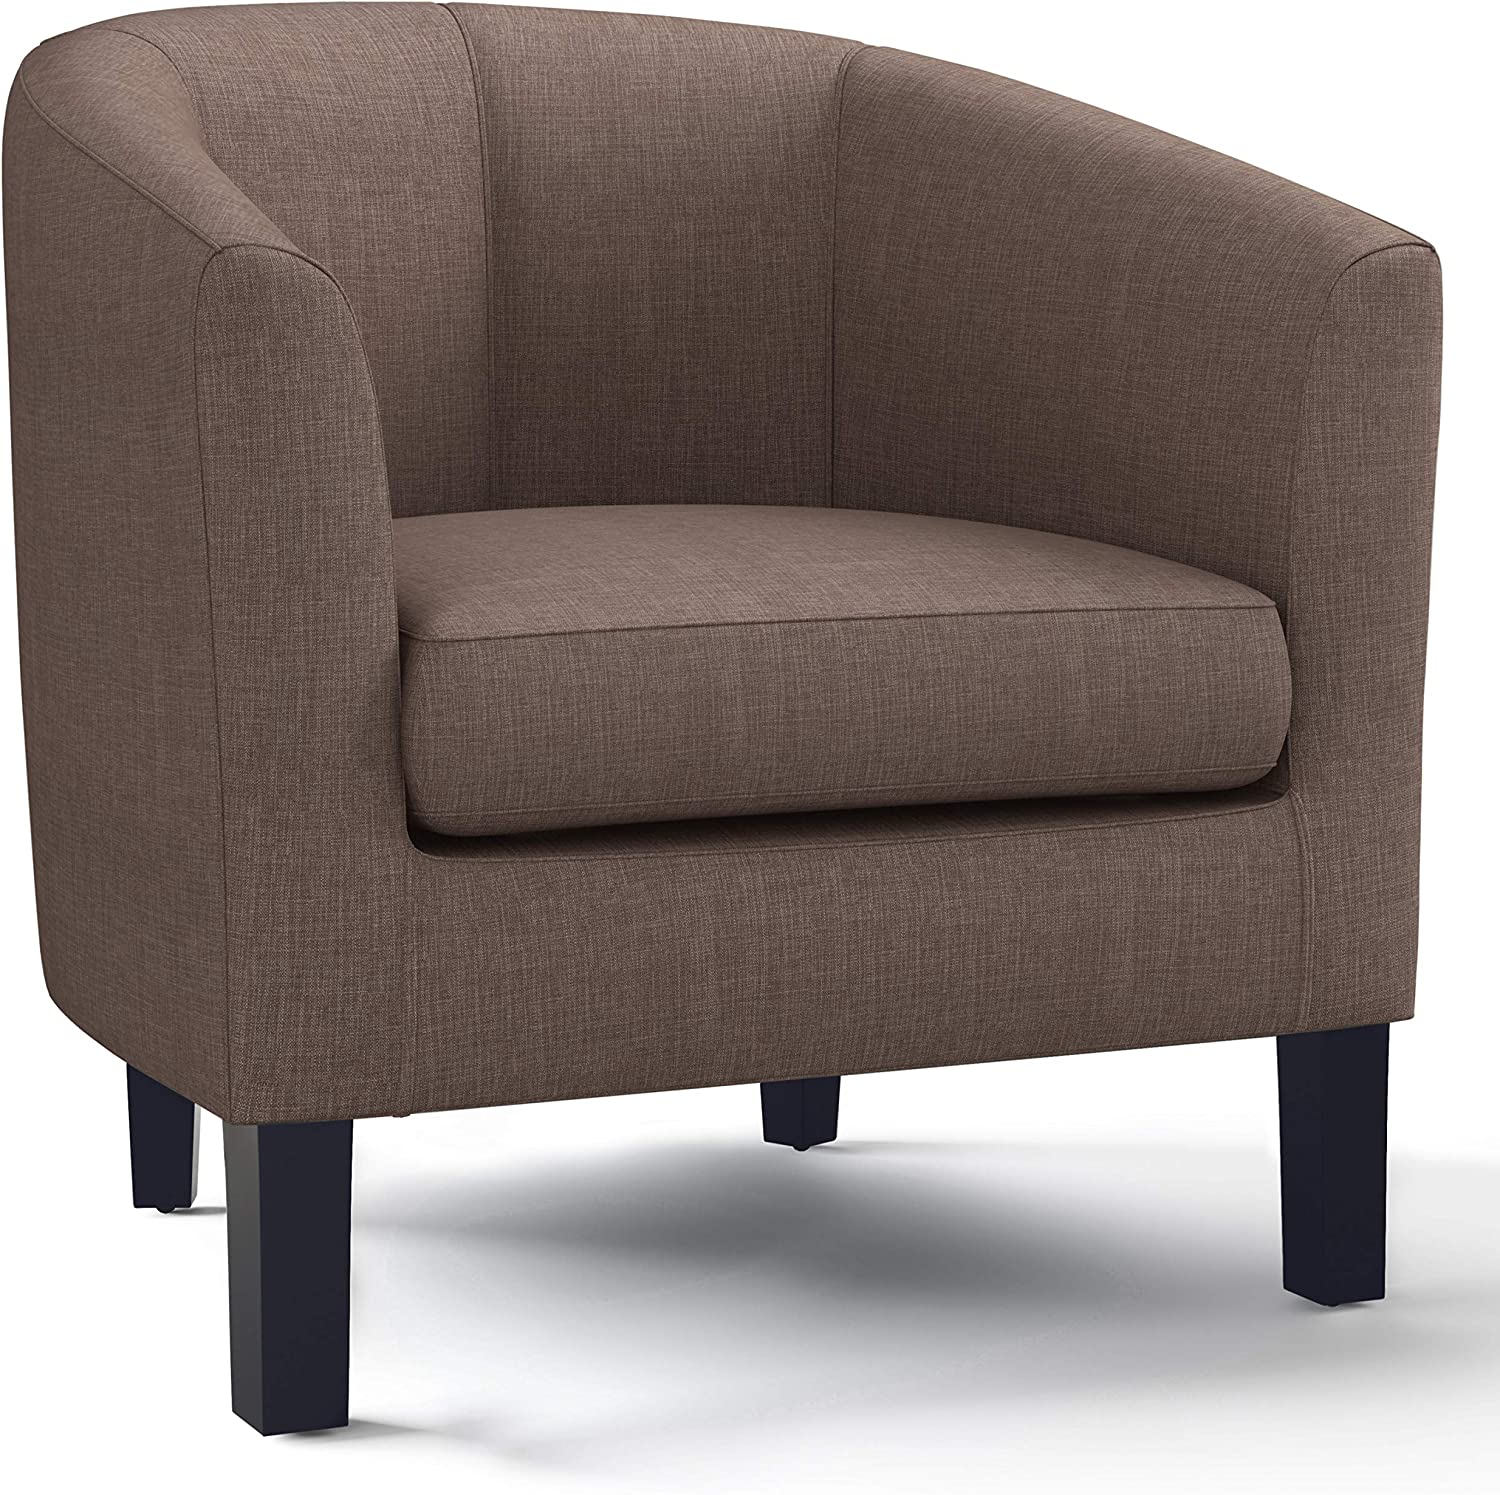 SIMPLIHOME Austin 30 inch Wide Transitional Tub Chair in Light Mocha Linen Look Fabric